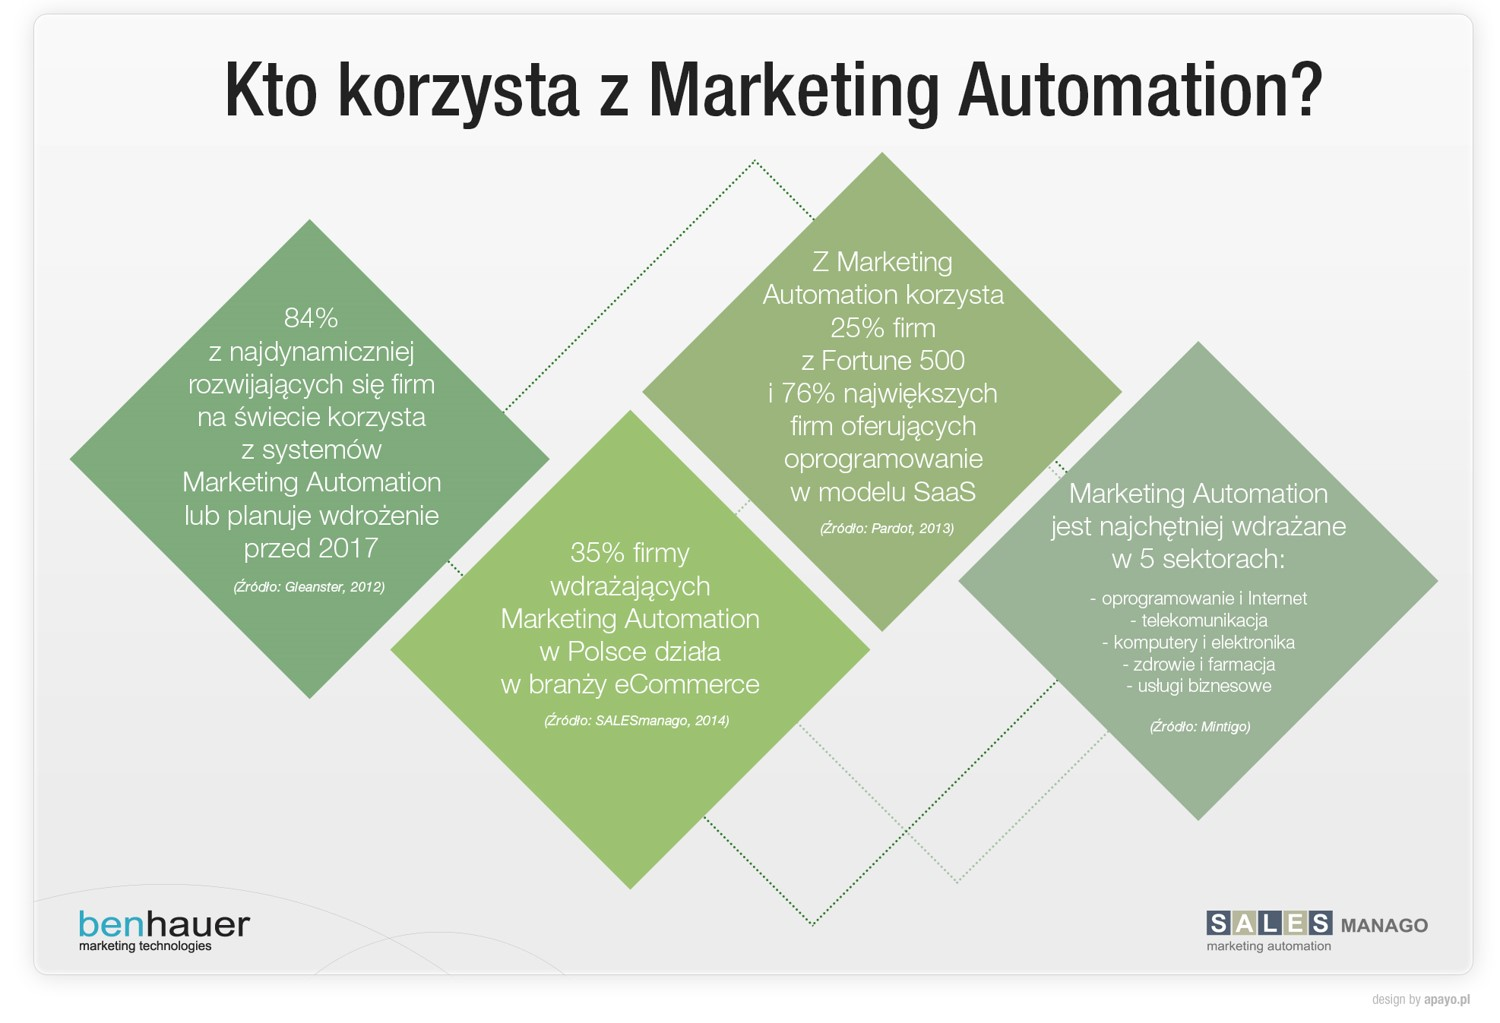 Kto korzysta z Marketing Automation?